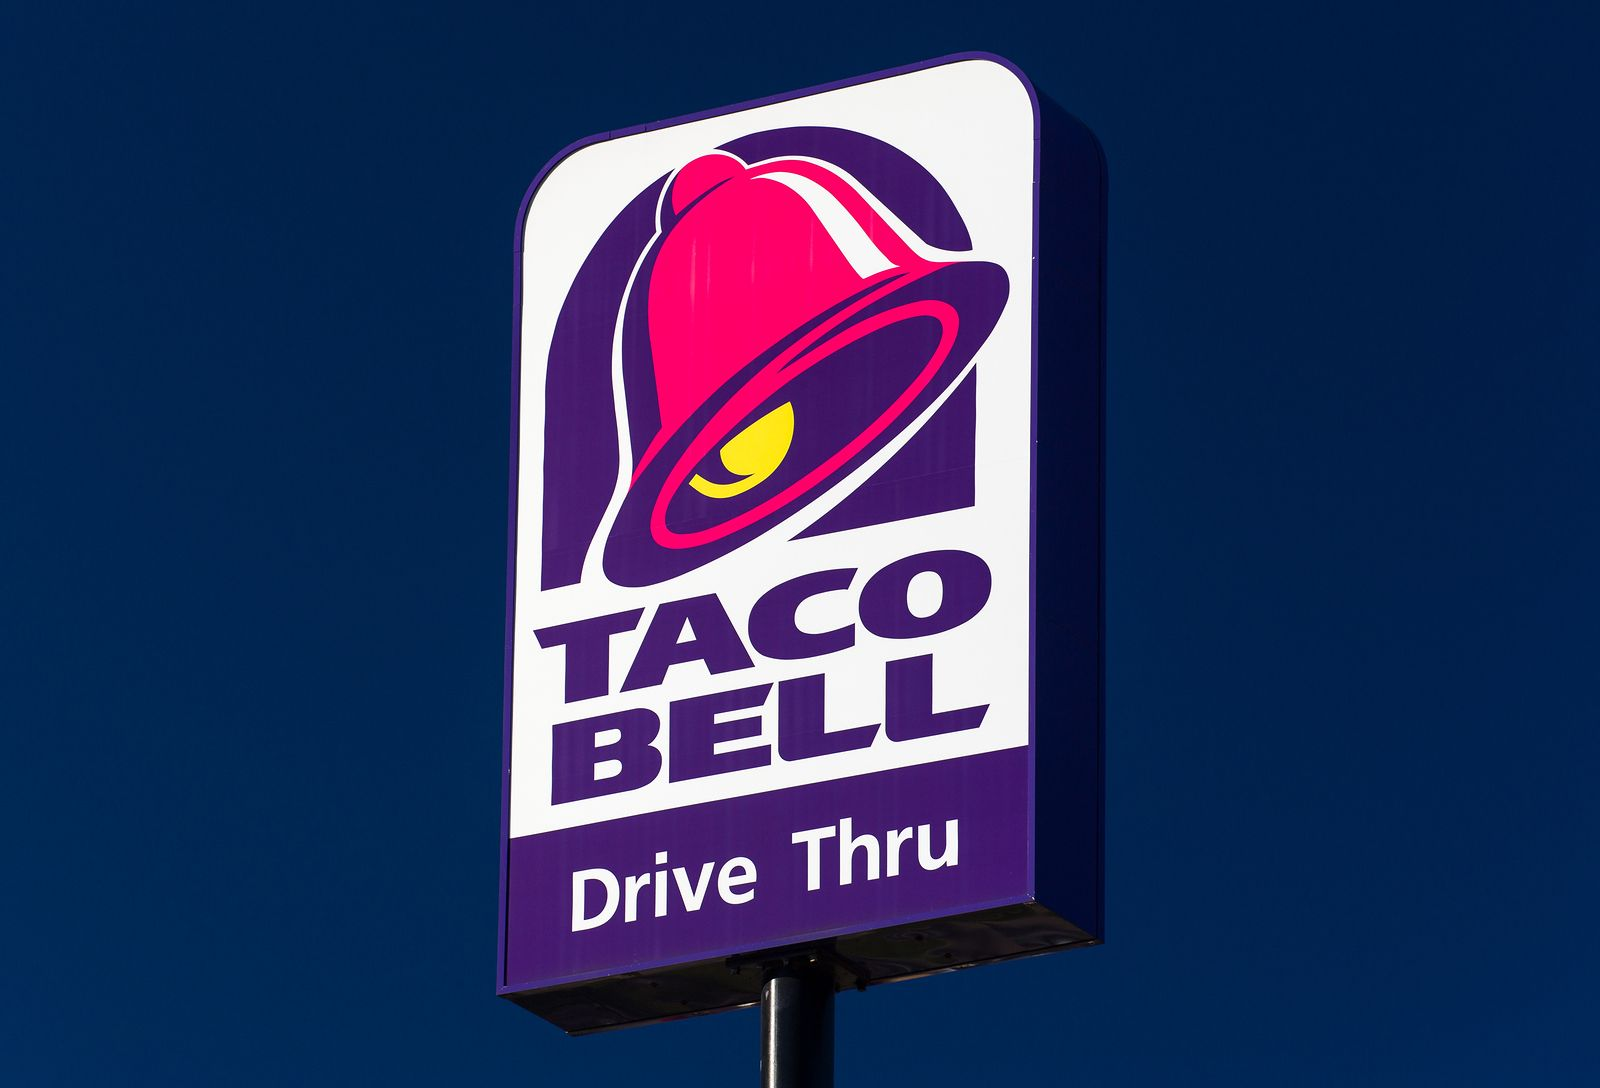 Mexican standoff; Taco Bill takes Taco Bell to court | Inside Franchise Business